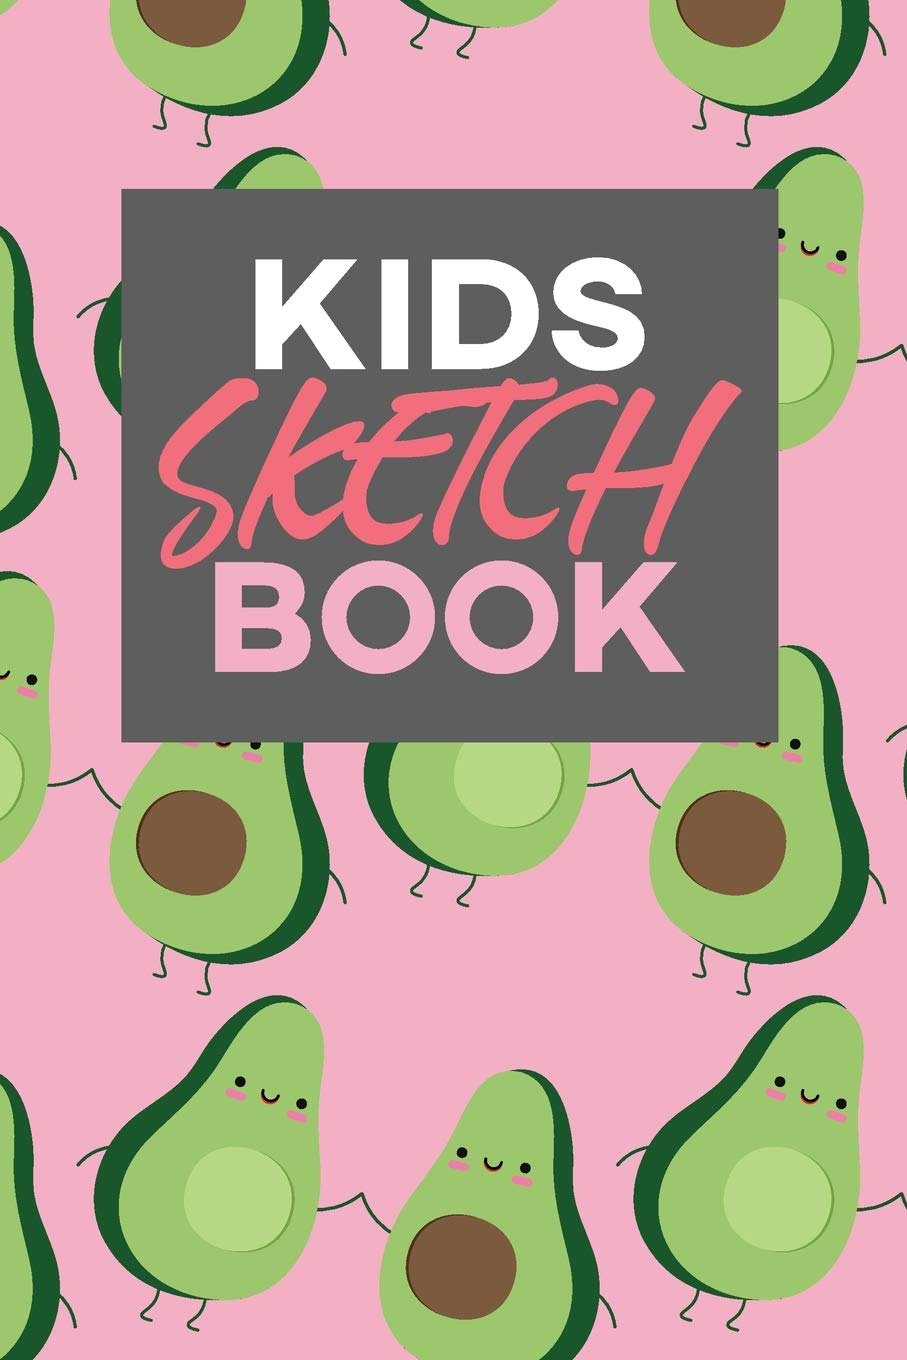 Kids Sketch Book Kawaii Cute Avocado Vegan Food Pattern Cheng Binns Frasier 9781793159052 Amazon Com Books Learn how to draw a cooking pot for kids easy and step by step. kids sketch book kawaii cute avocado